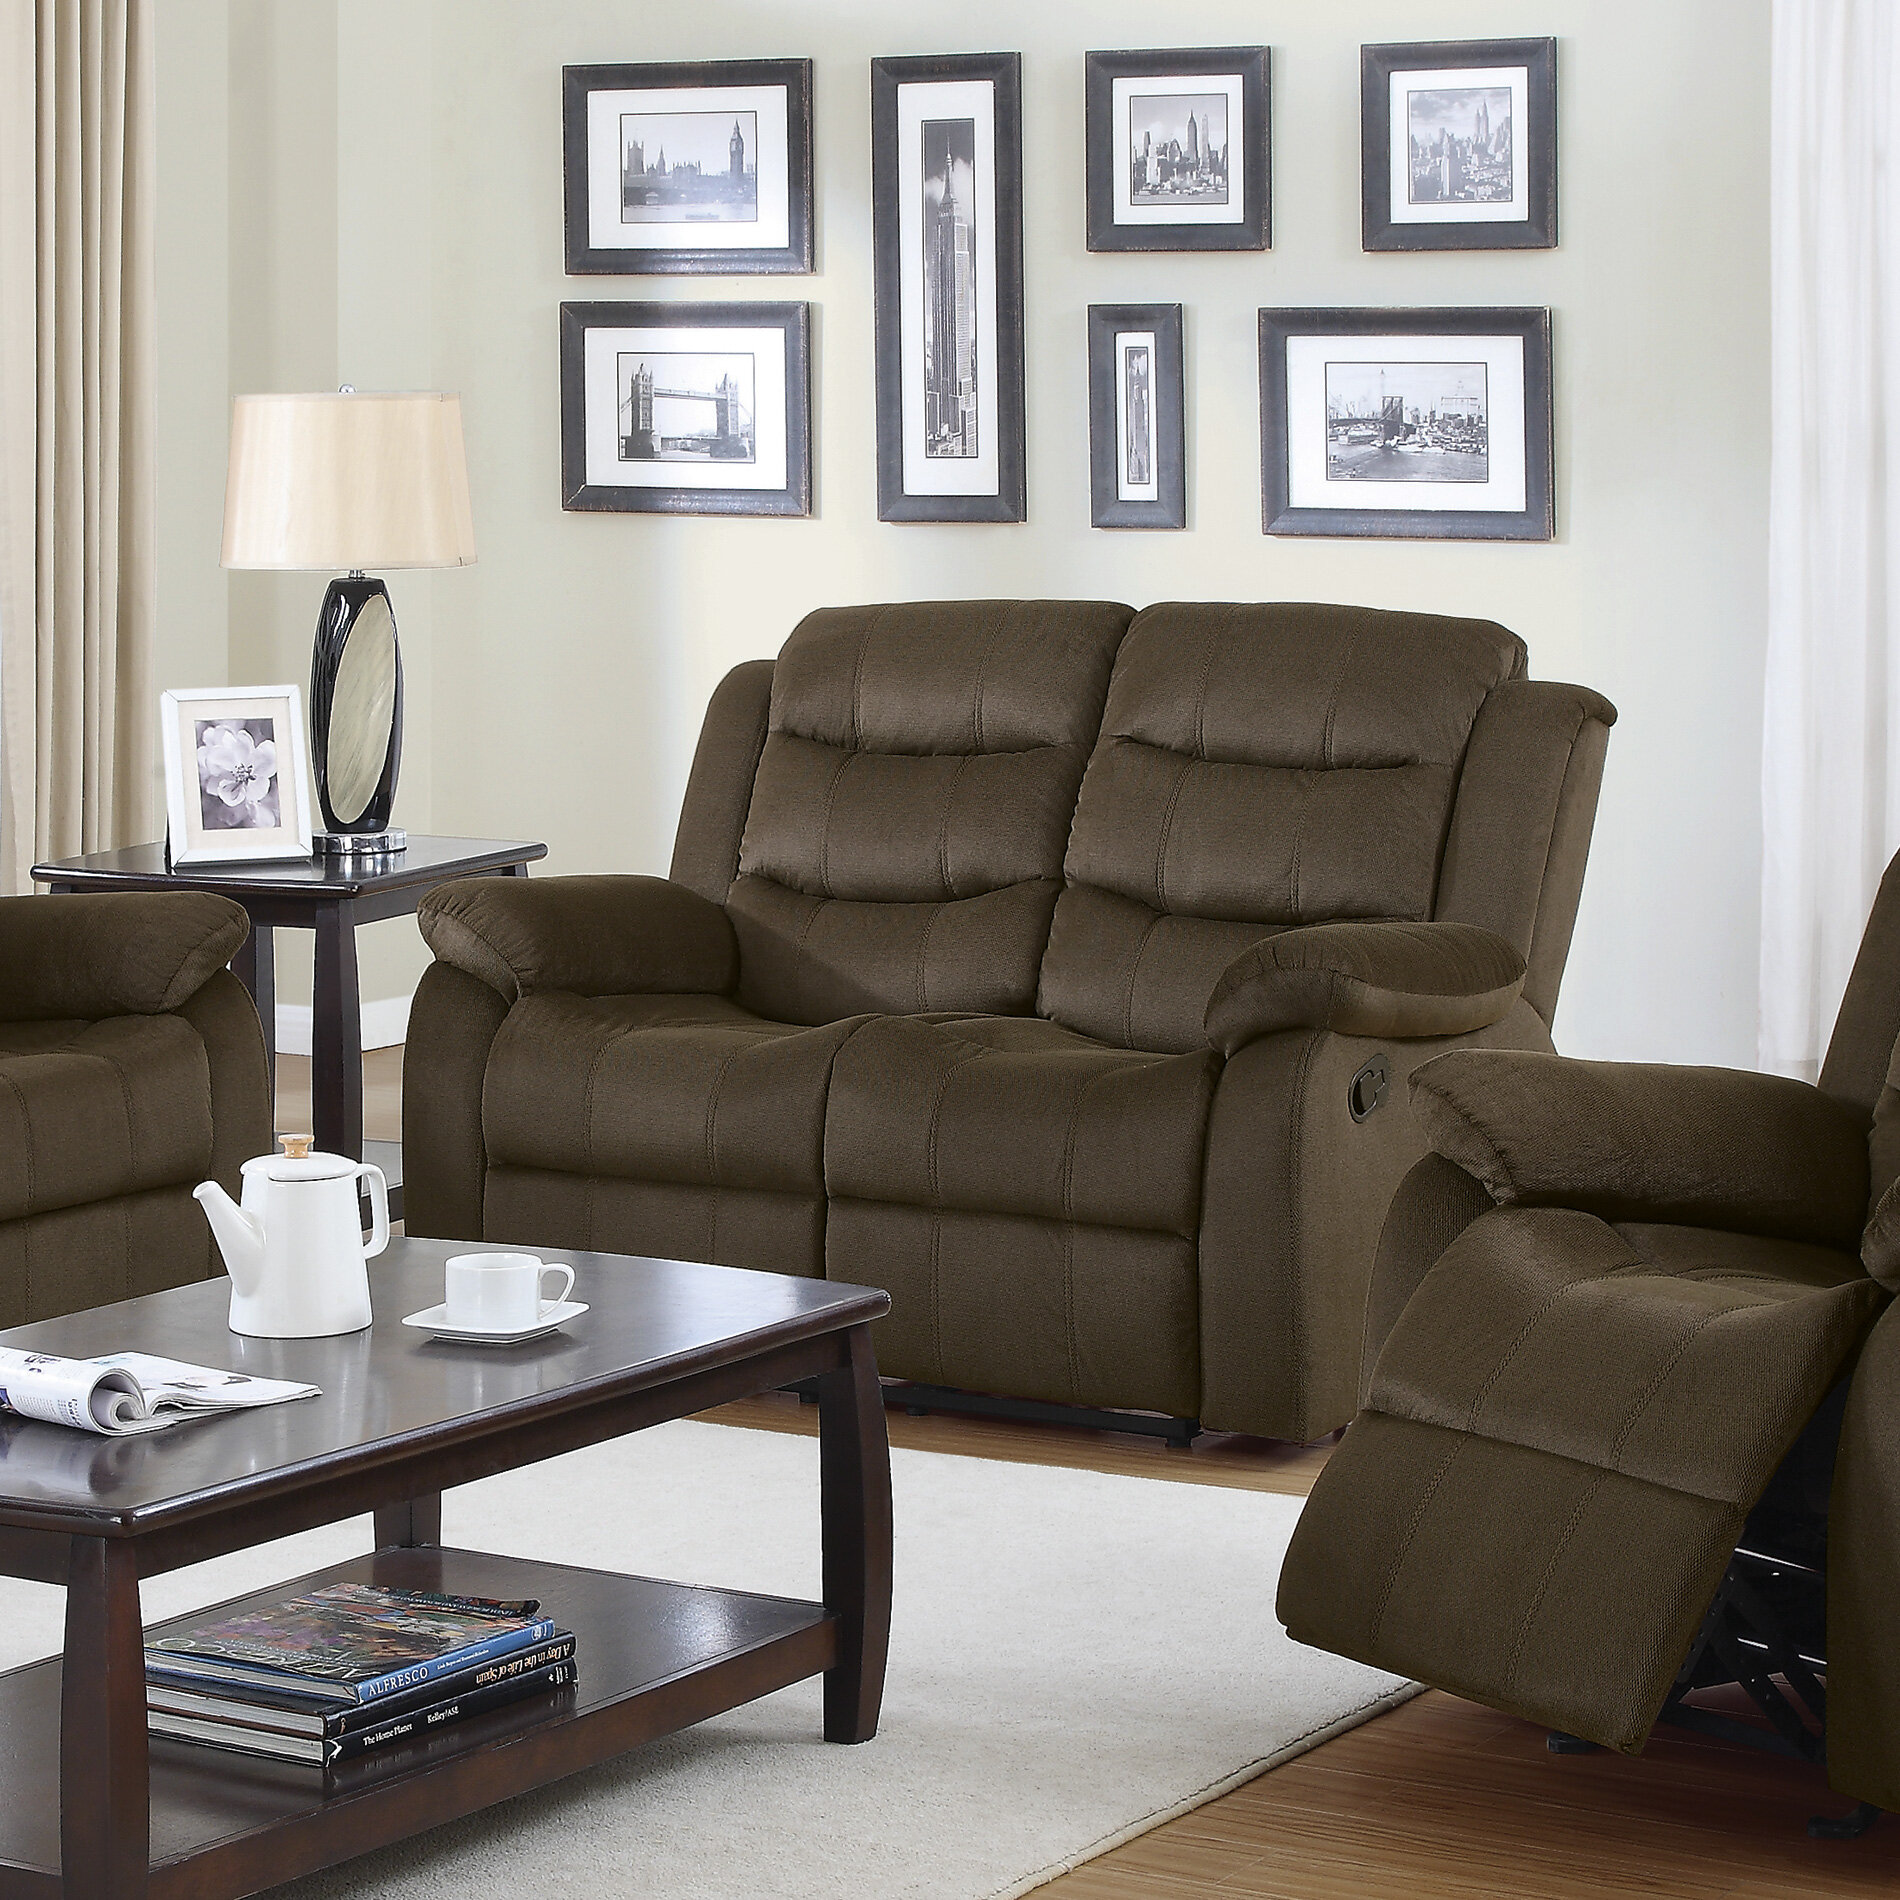 com dp living room bonded sofa with amazon double couch recliner brown leather reclining kitchen dining